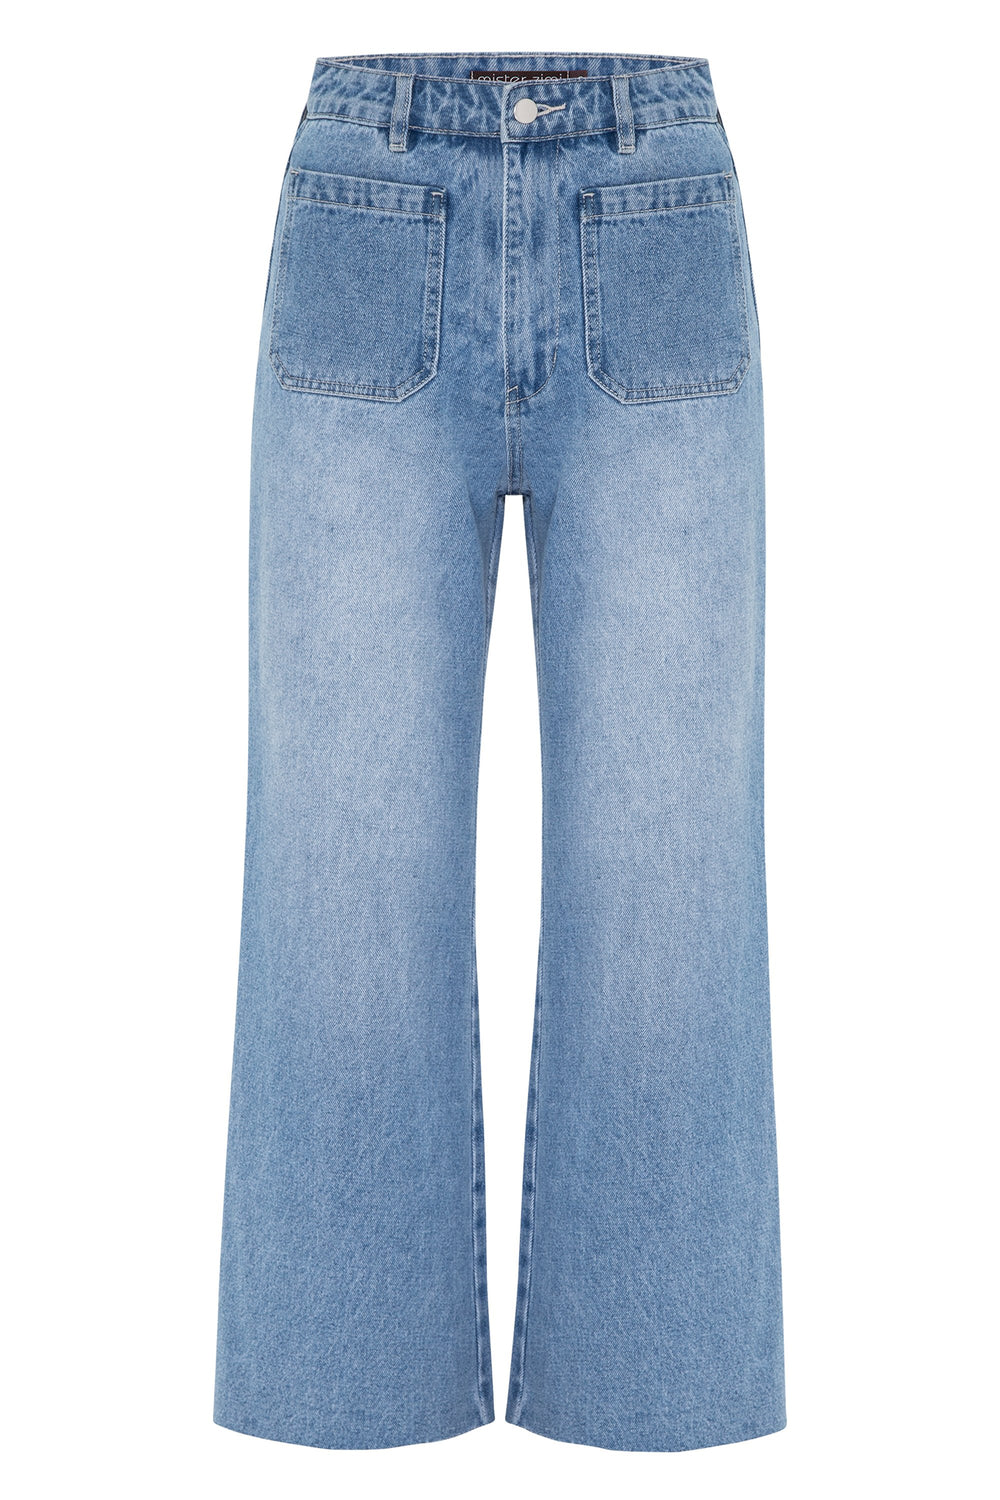 Sailor Jeans In Light Blue Denim